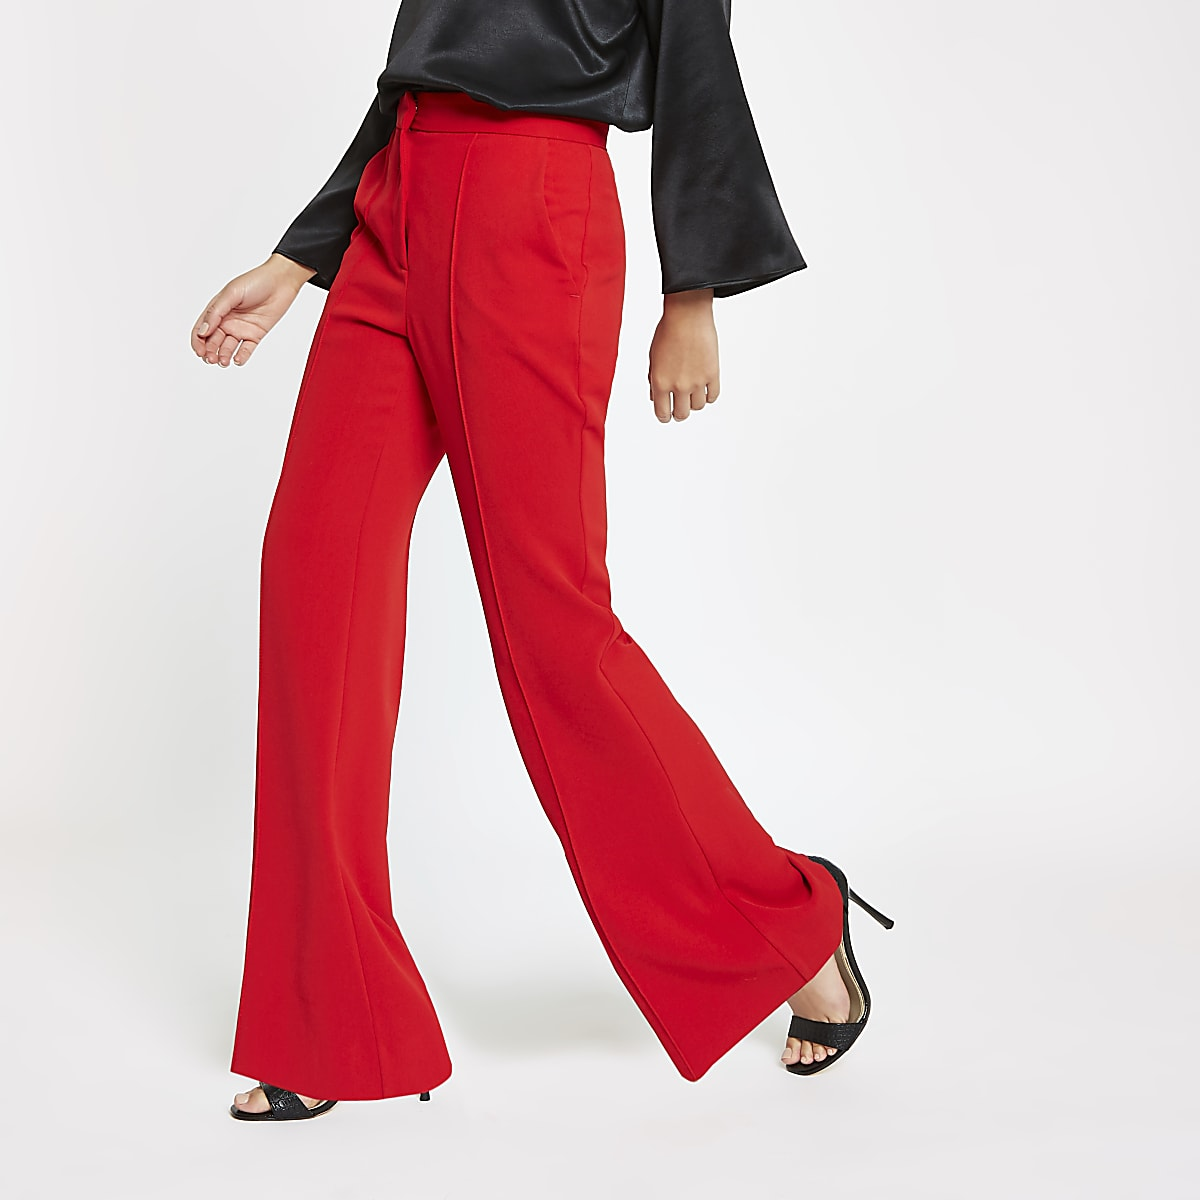 Red flared leg trousers